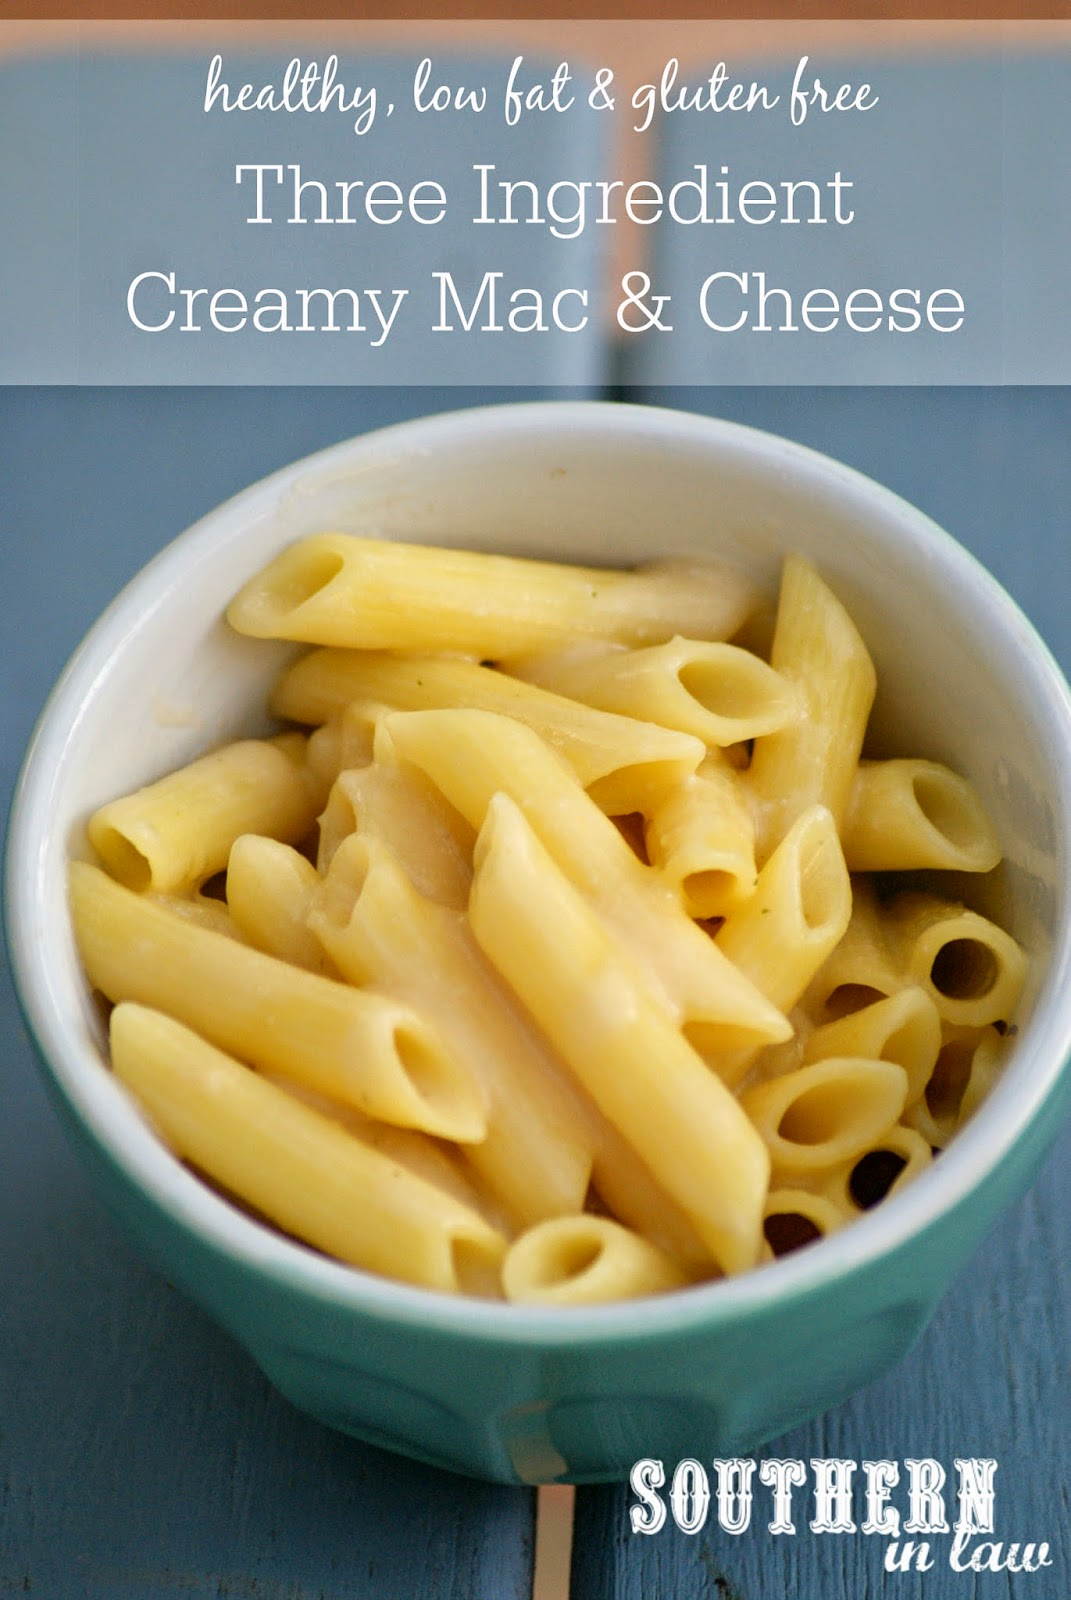 Gluten Free Three Ingredient Creamy Mac and Cheese Recipe - Healthy, low fat, gluten free, low calorie, dairy free